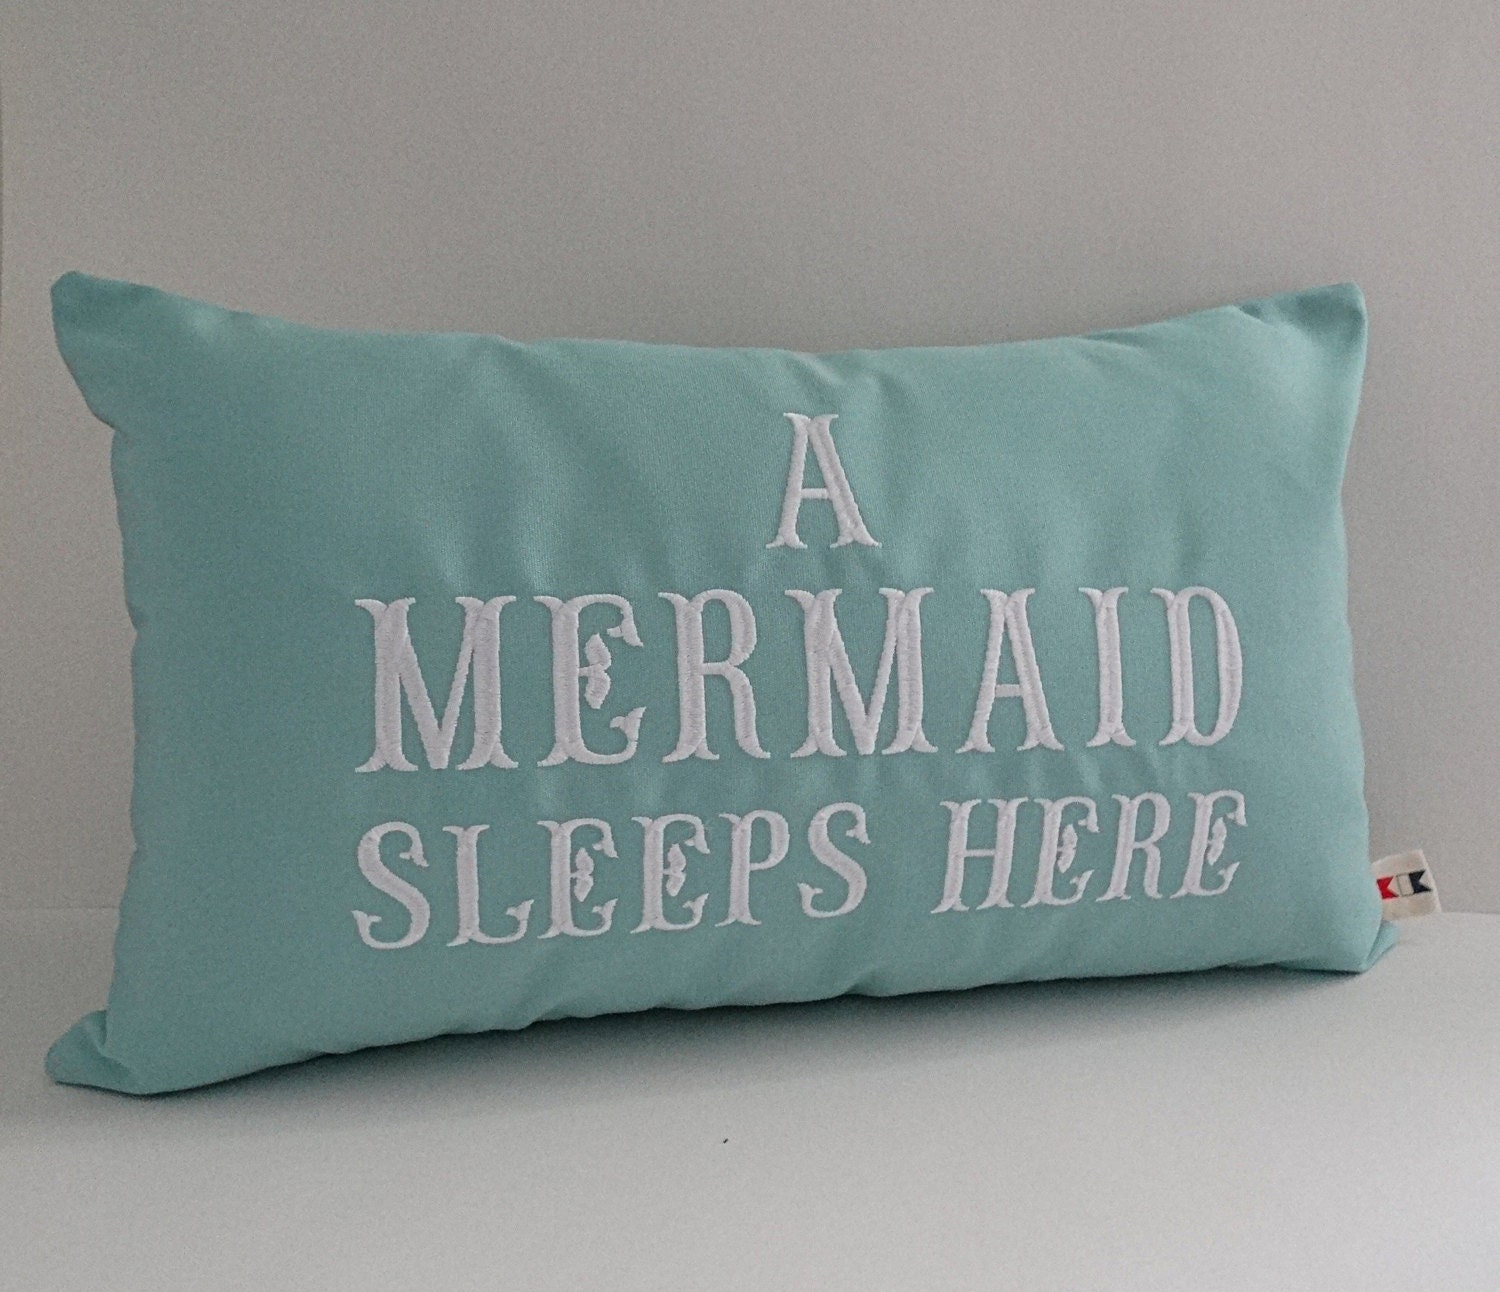 Small Beach Throw Pillows : Mermaid pillow cover A MERMAID SLEEPS HERE 12 x